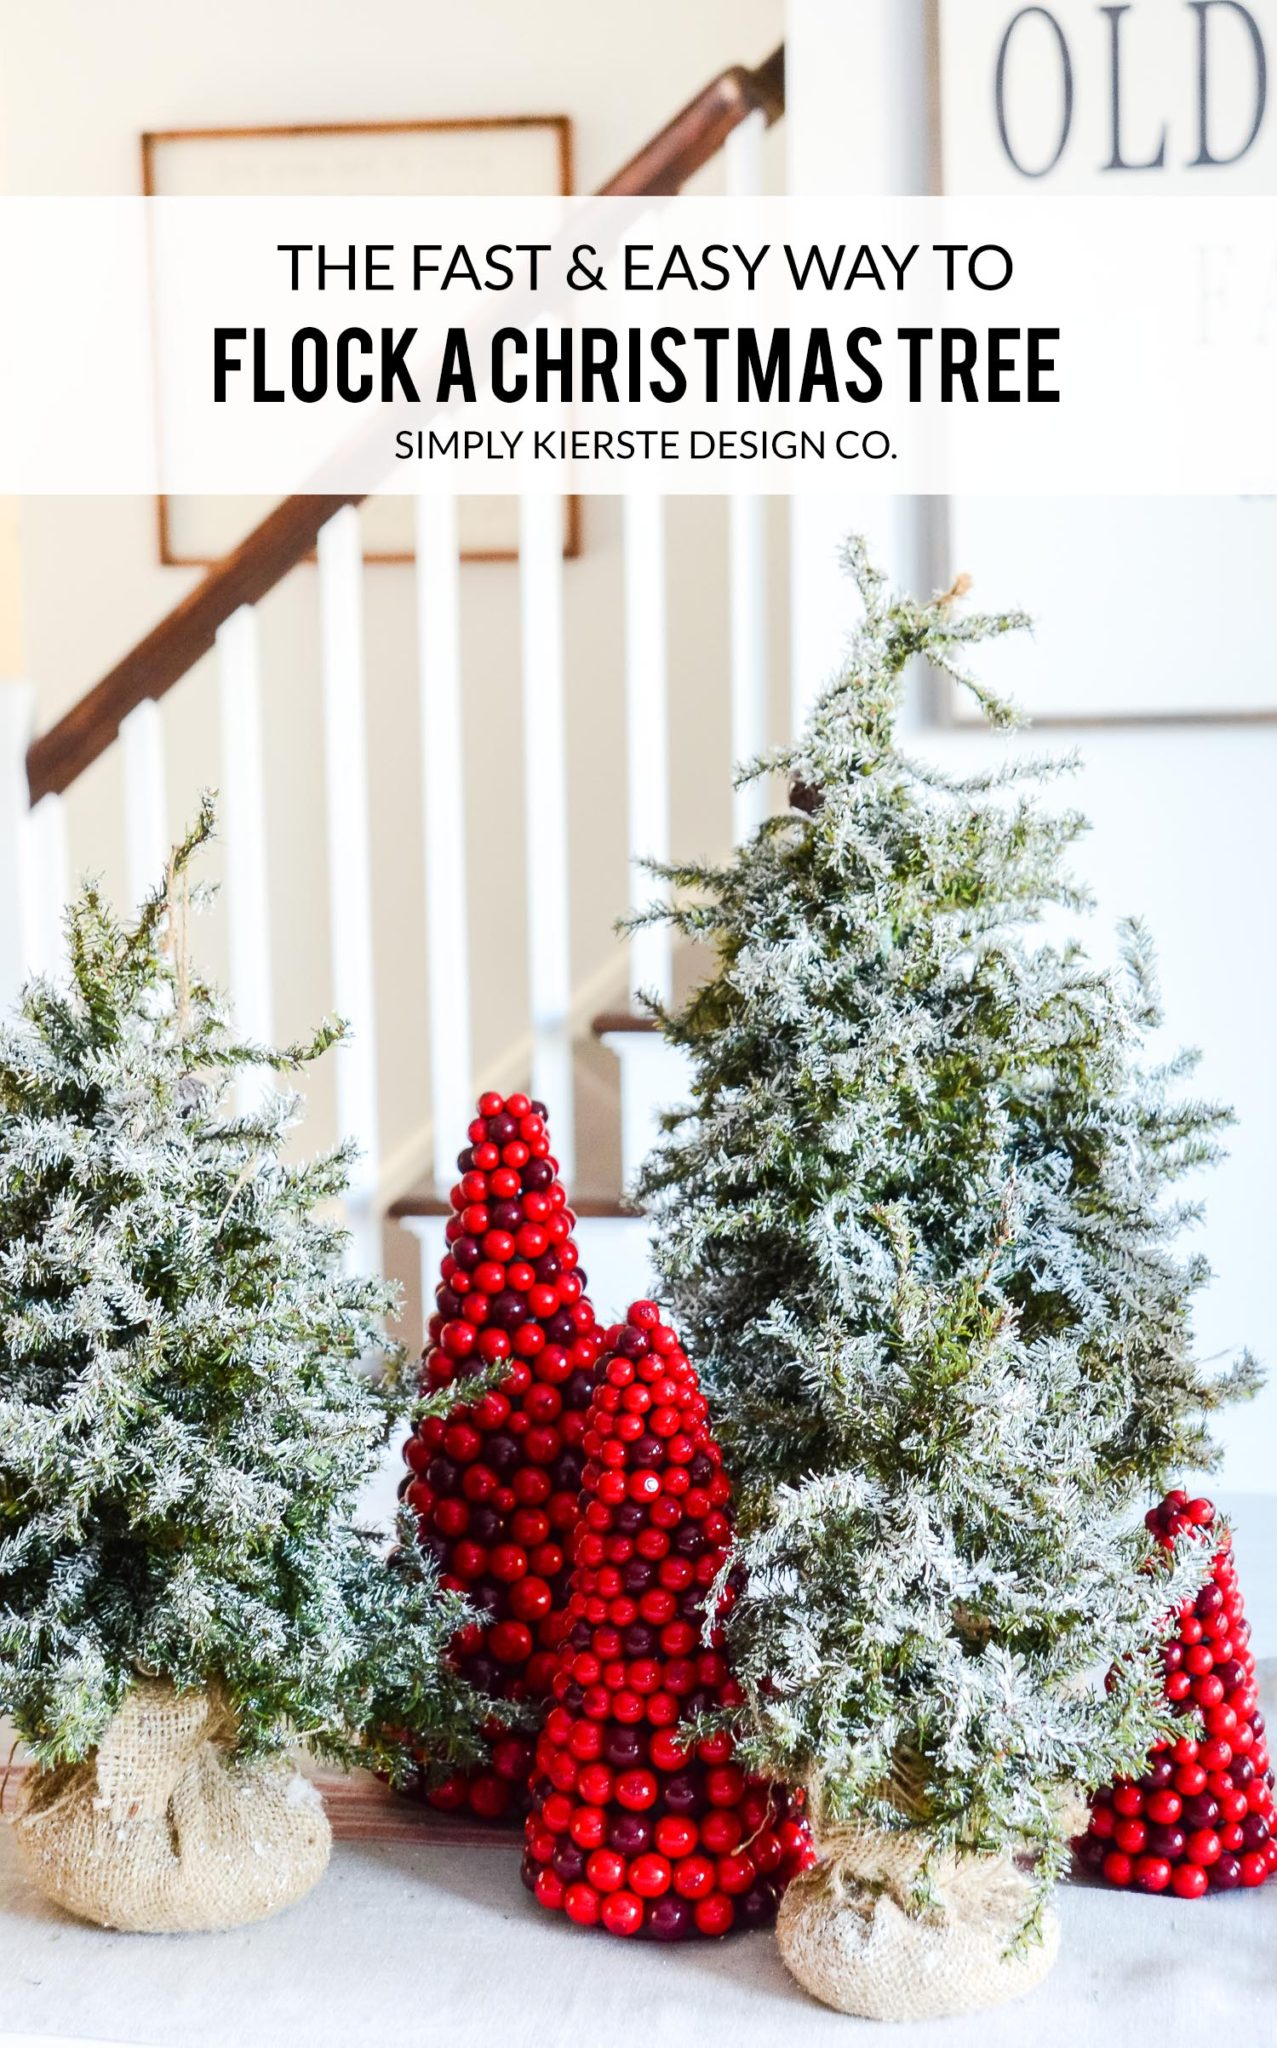 How to Flock a Christmas Tree the EASY way! | oldsaltfarm.com #diyflockedtree #flockedchristmastree #diychristmasdecor